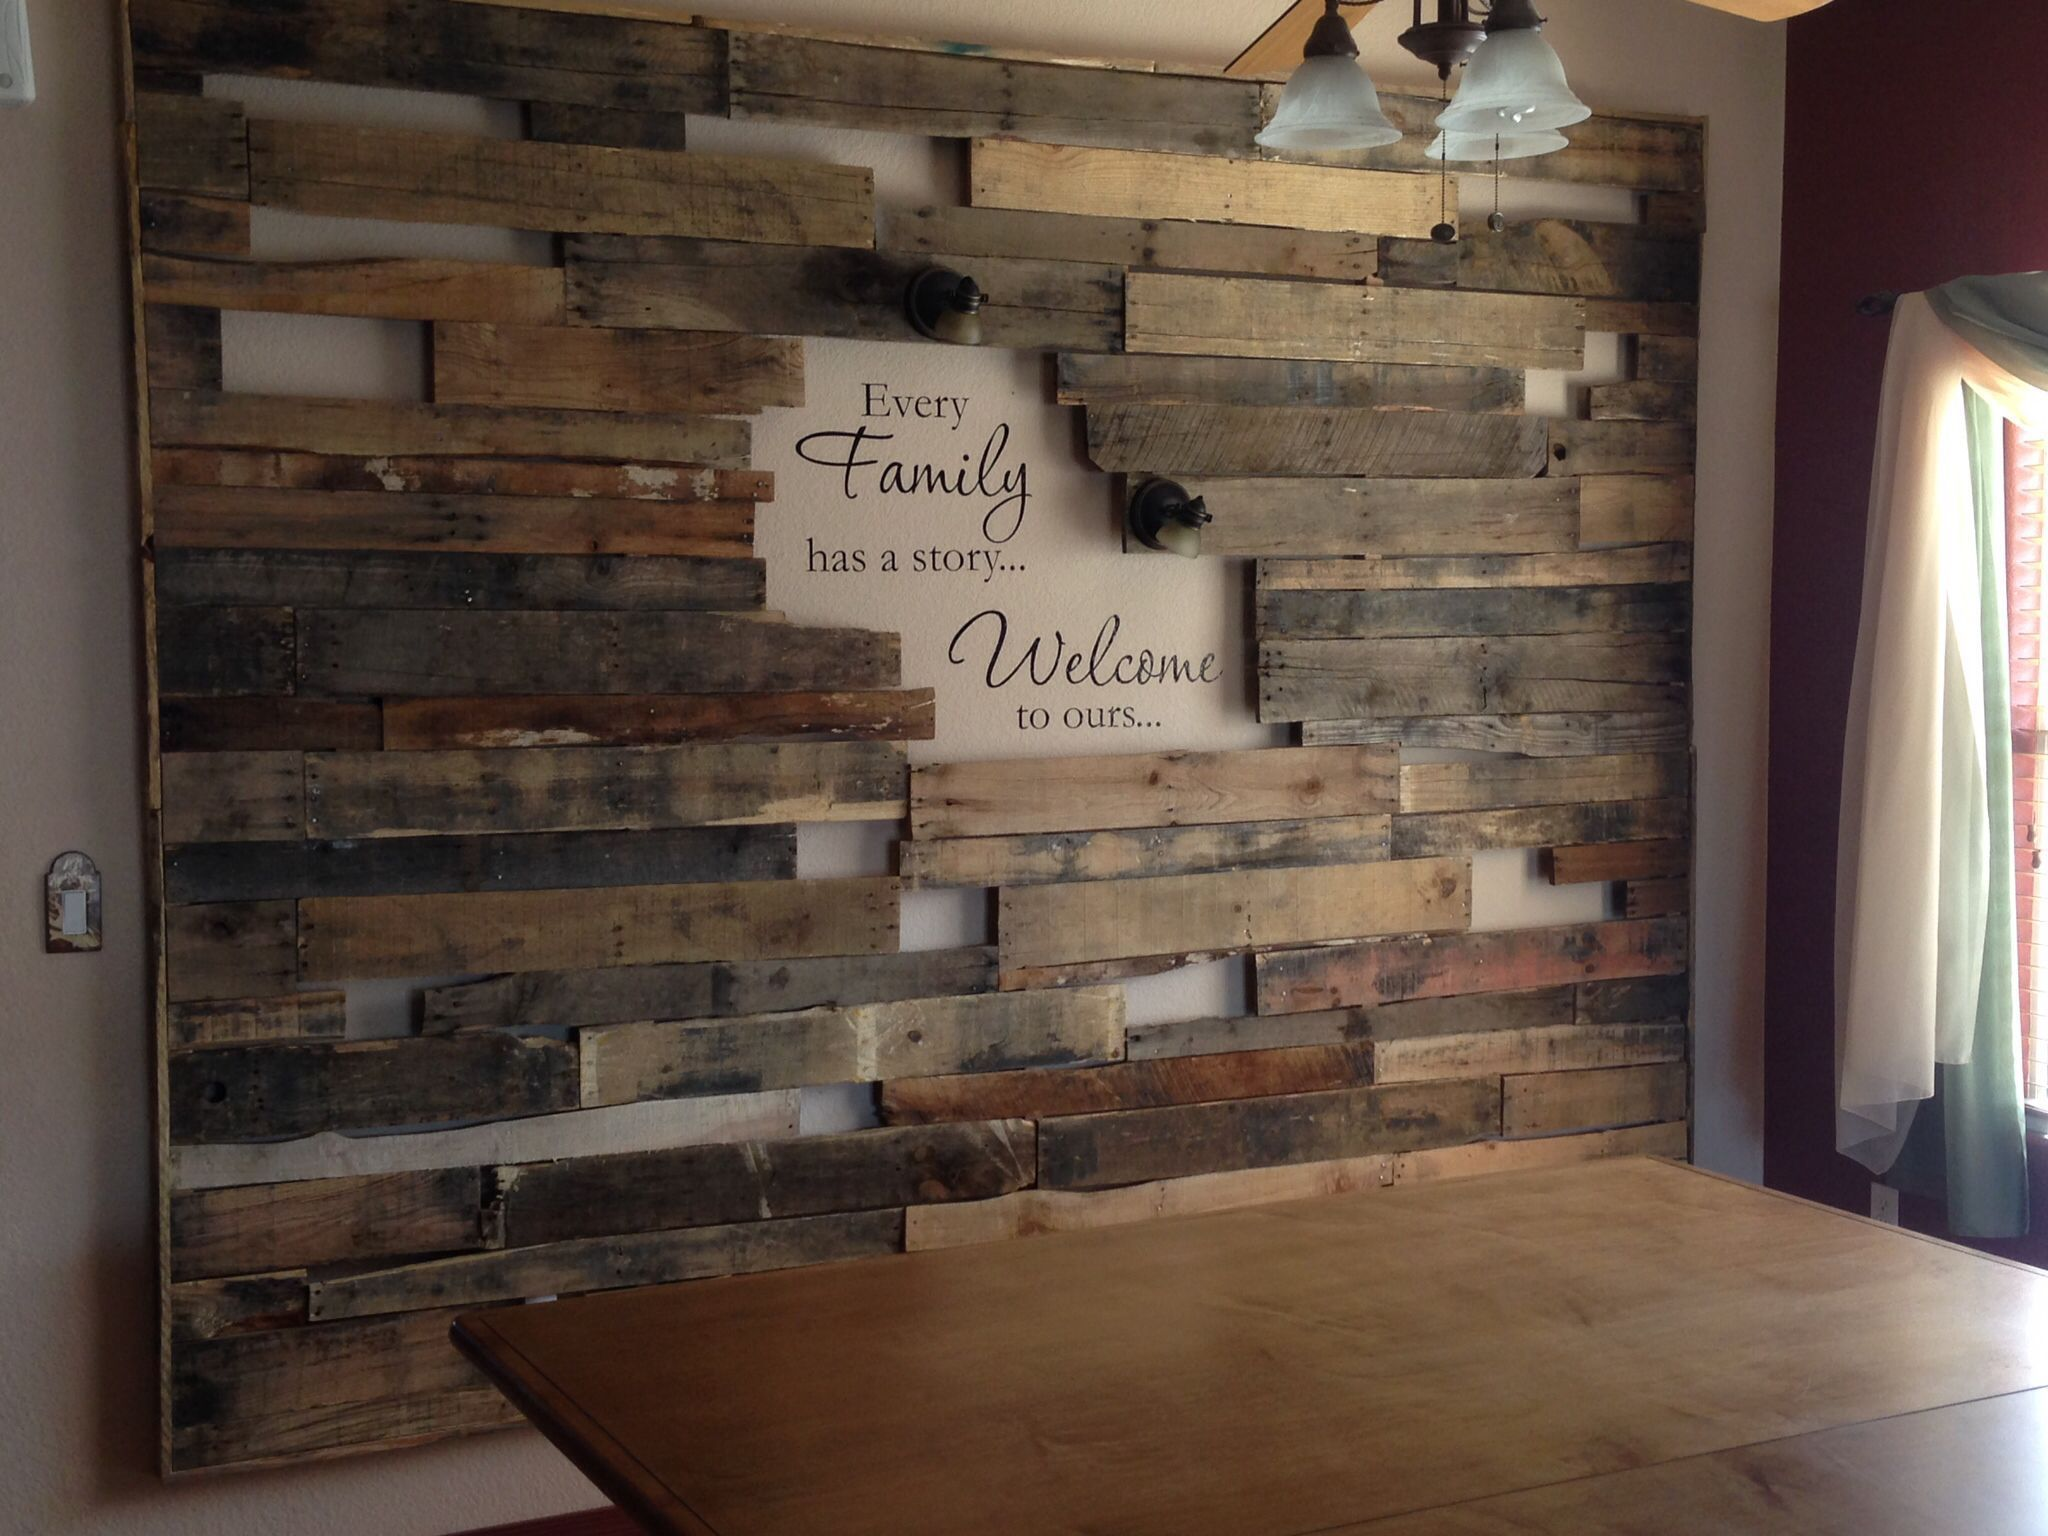 How To Create A Wood Pallet Accent Wall Ideas Wall Decor Living Room Wallpaper Accent Wall Wood Accent Wall Wooden Pallet Wall Diy Pallet Wall Wood Pallet Wall